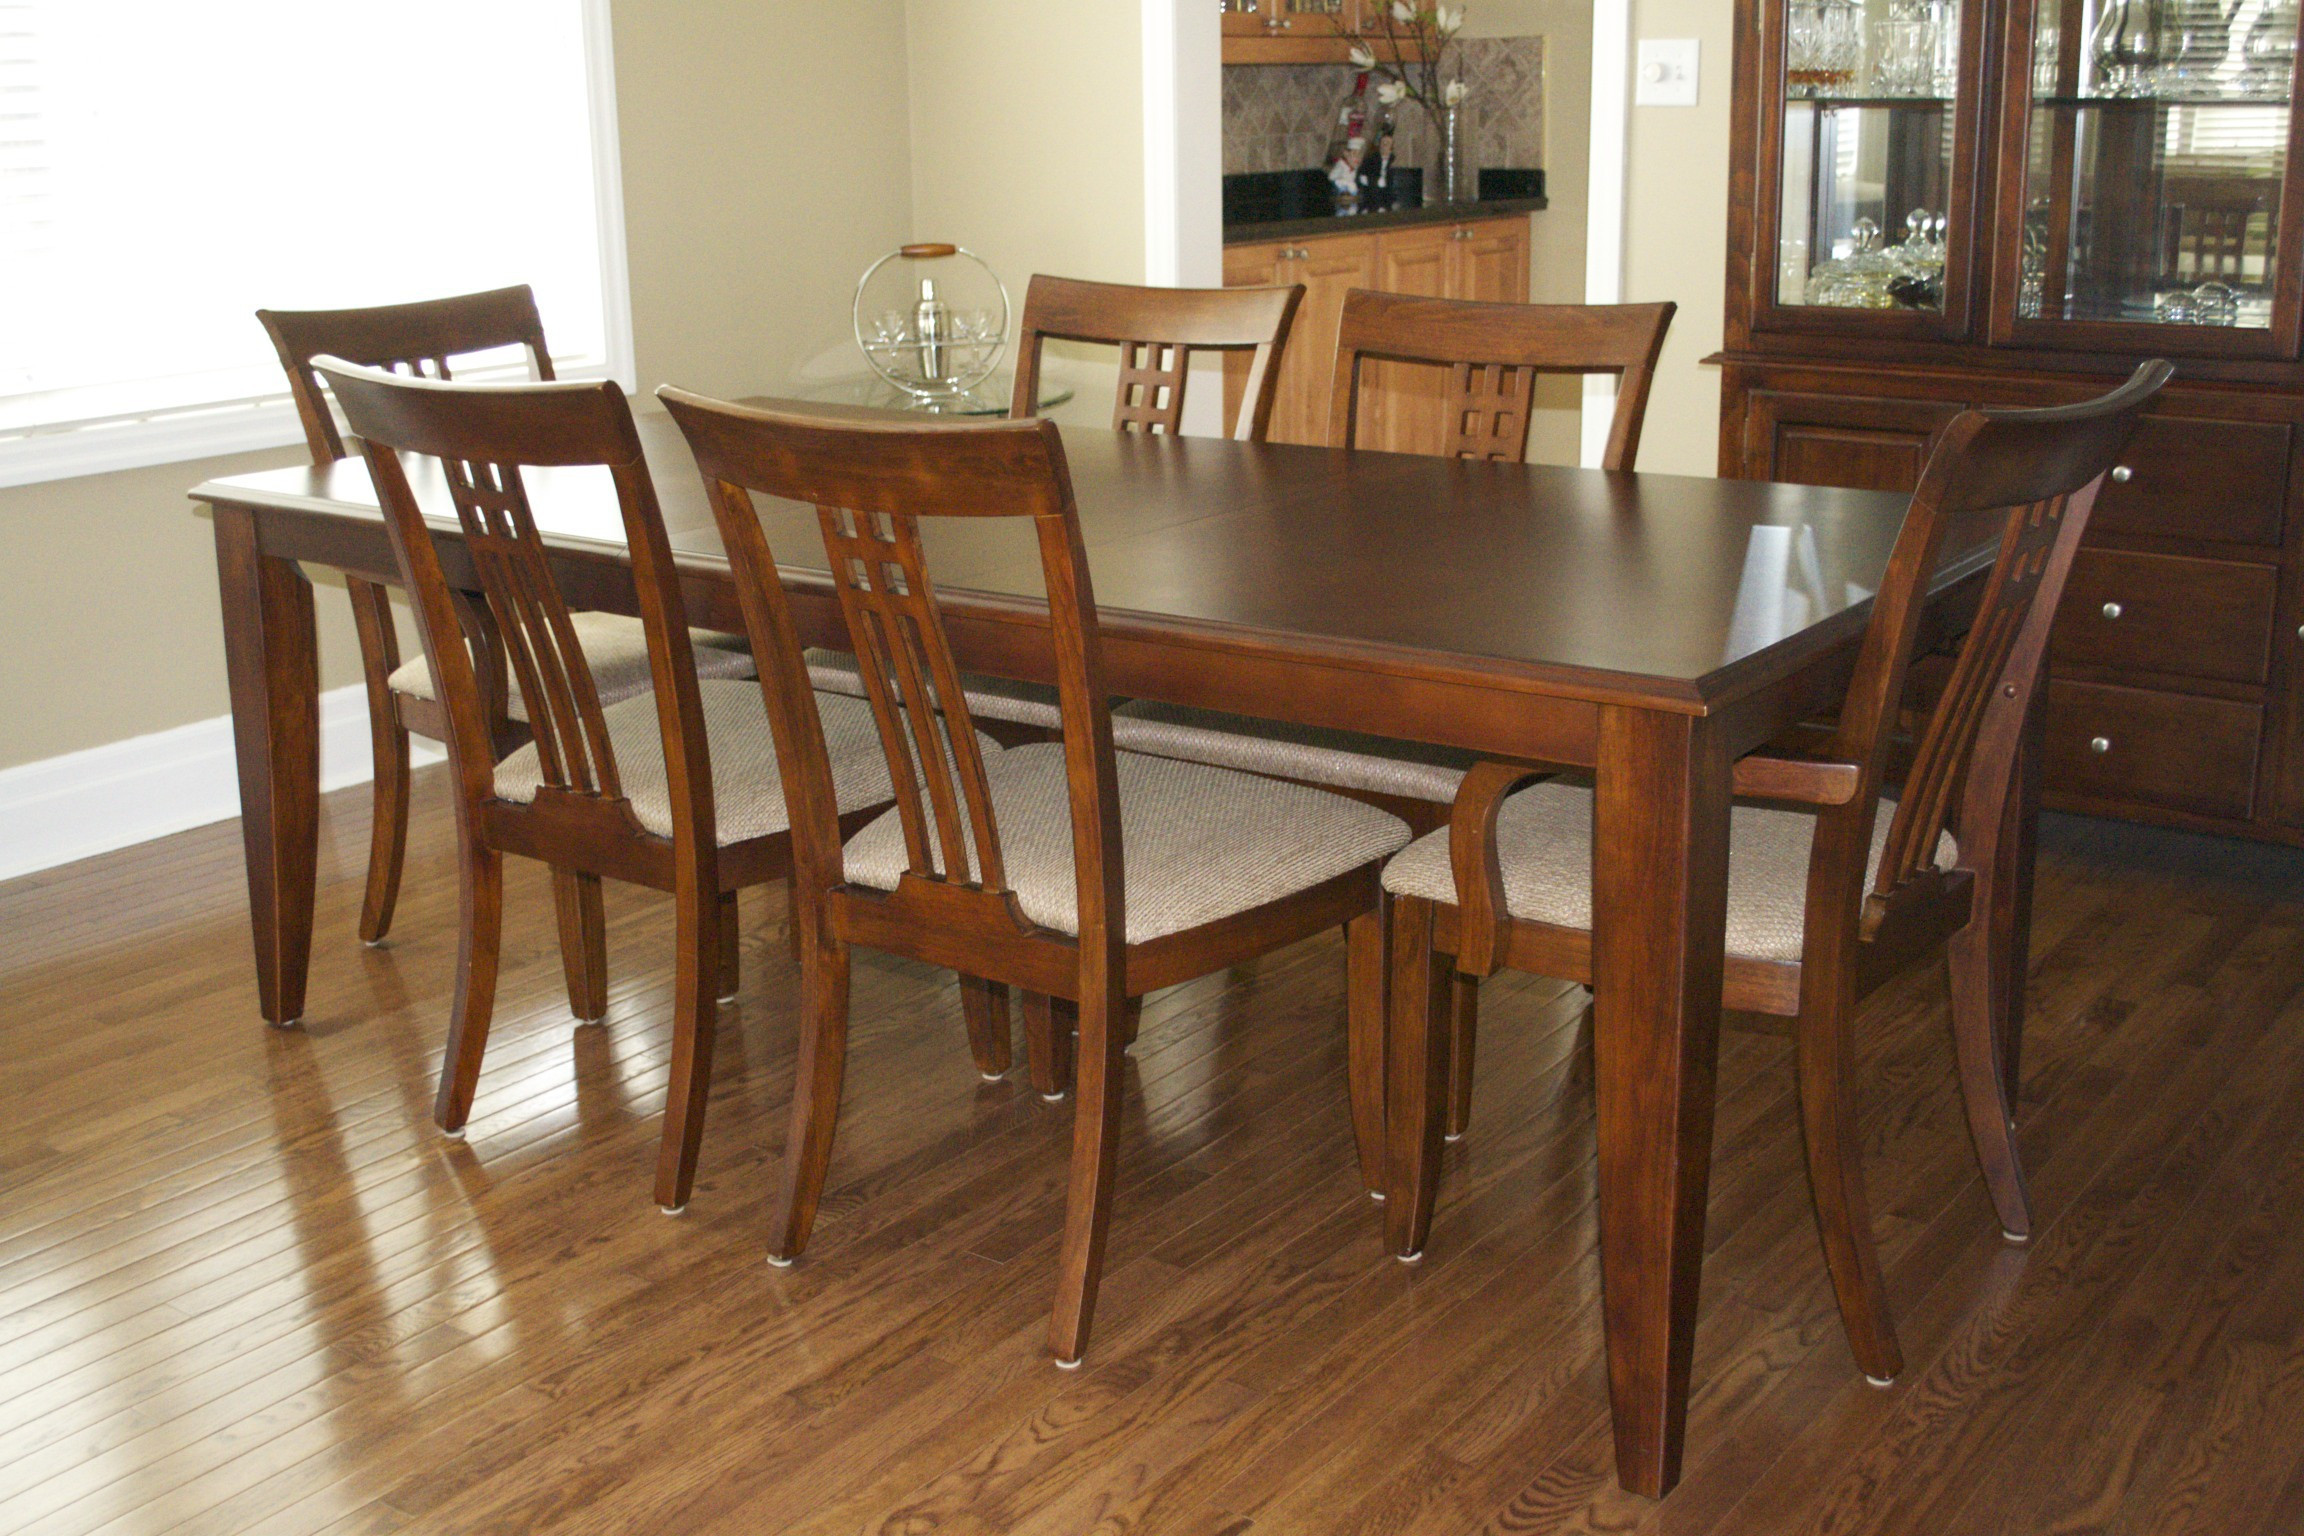 hardwood floors johannesburg of 21 lovely used dining table and chairs sale welovedandelion com regarding used dining table and chairs sale new article with tag garden wooden chairs for sale of